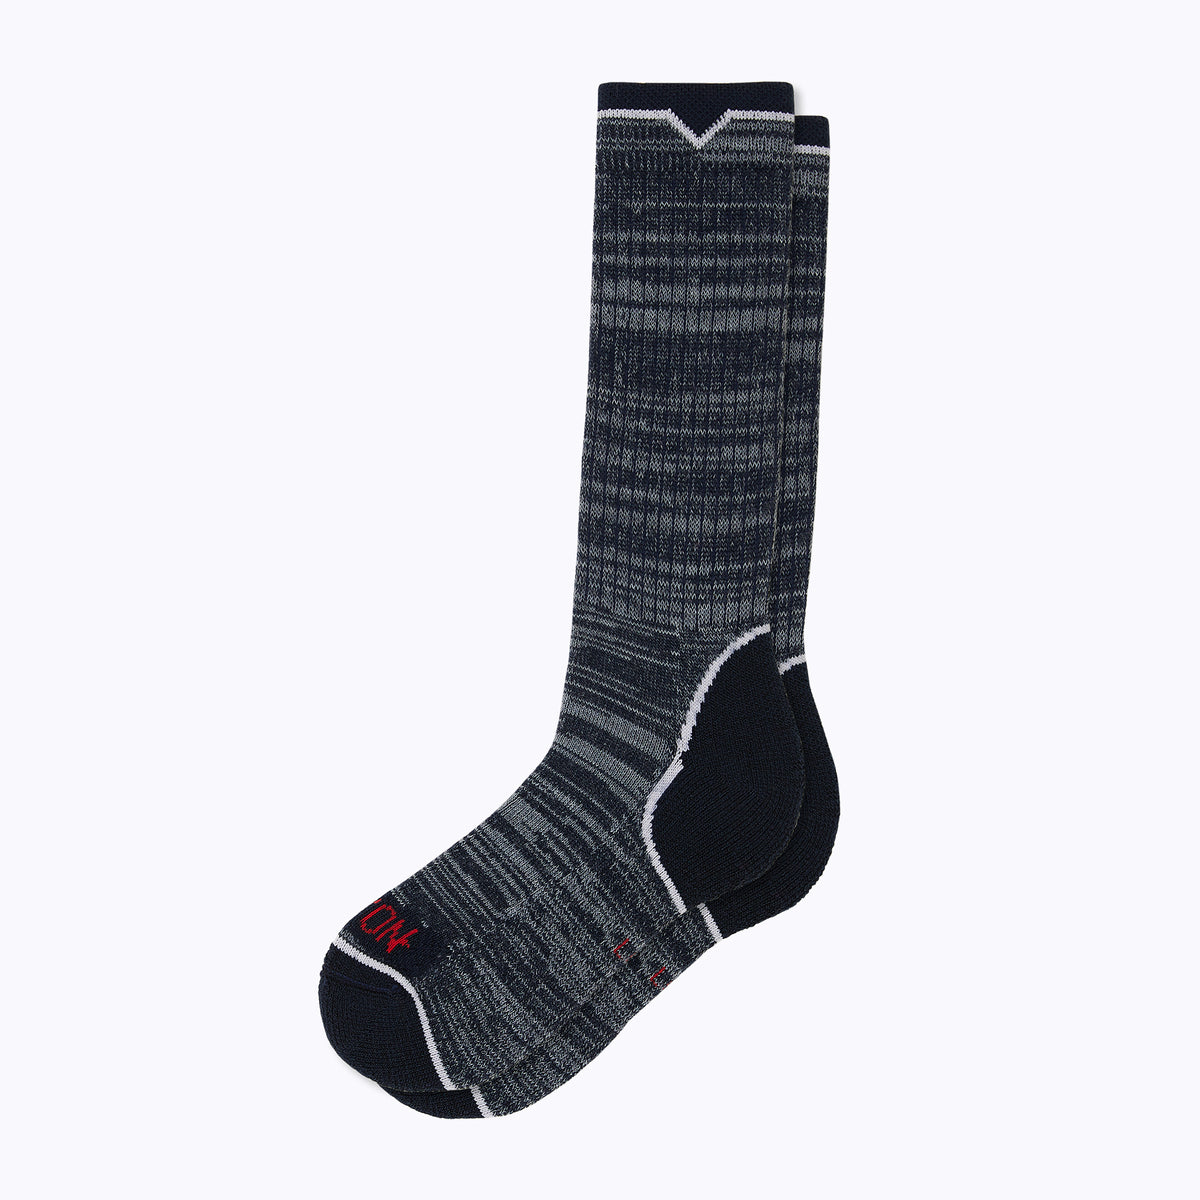 James Men's Mid-Calf Socks - Navy by Canyon Socks